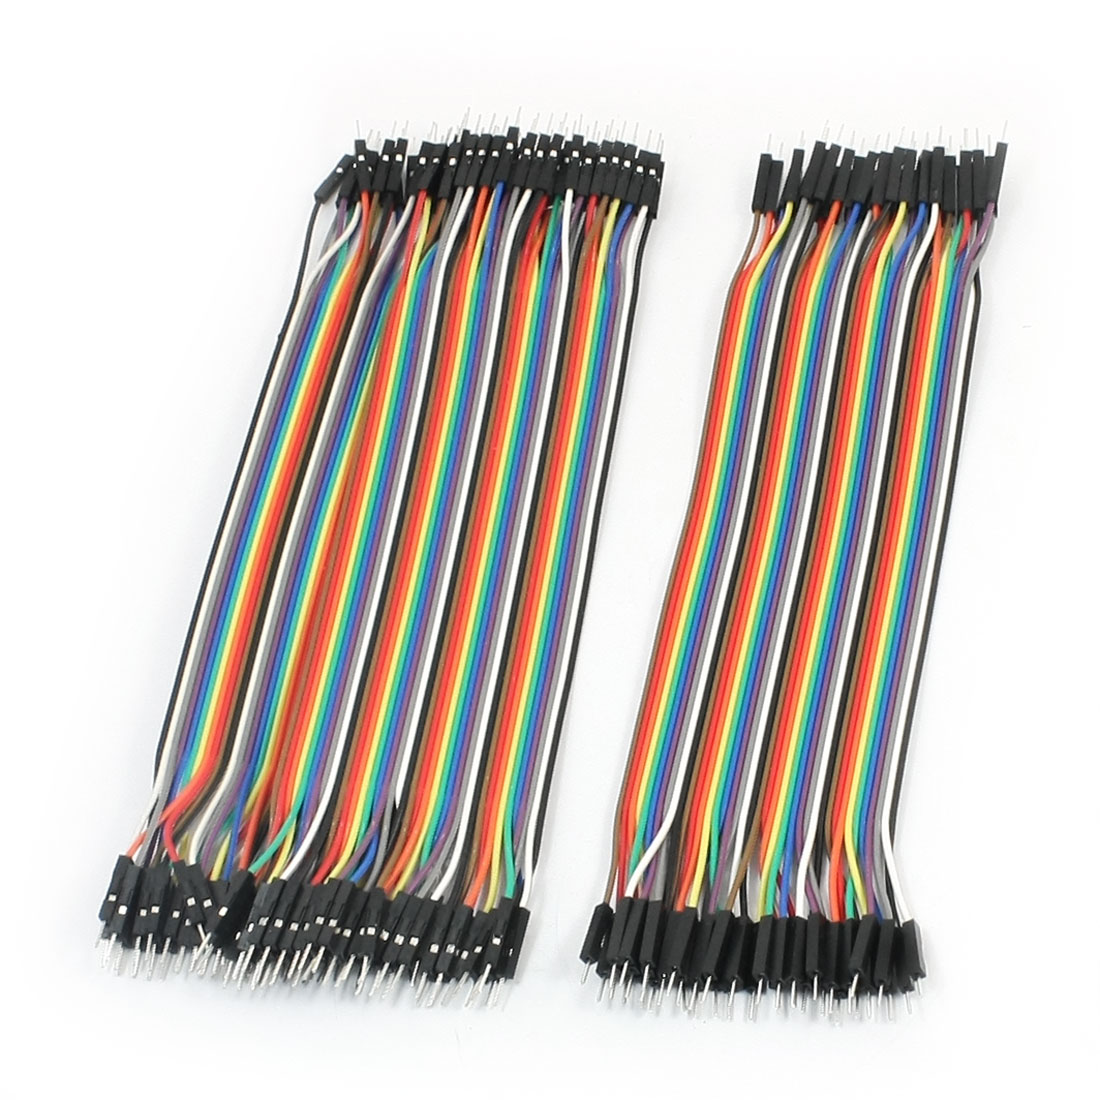 120Pcs 1 Pin Male to Male Jumper Cable Wires 22cm Long Colorful